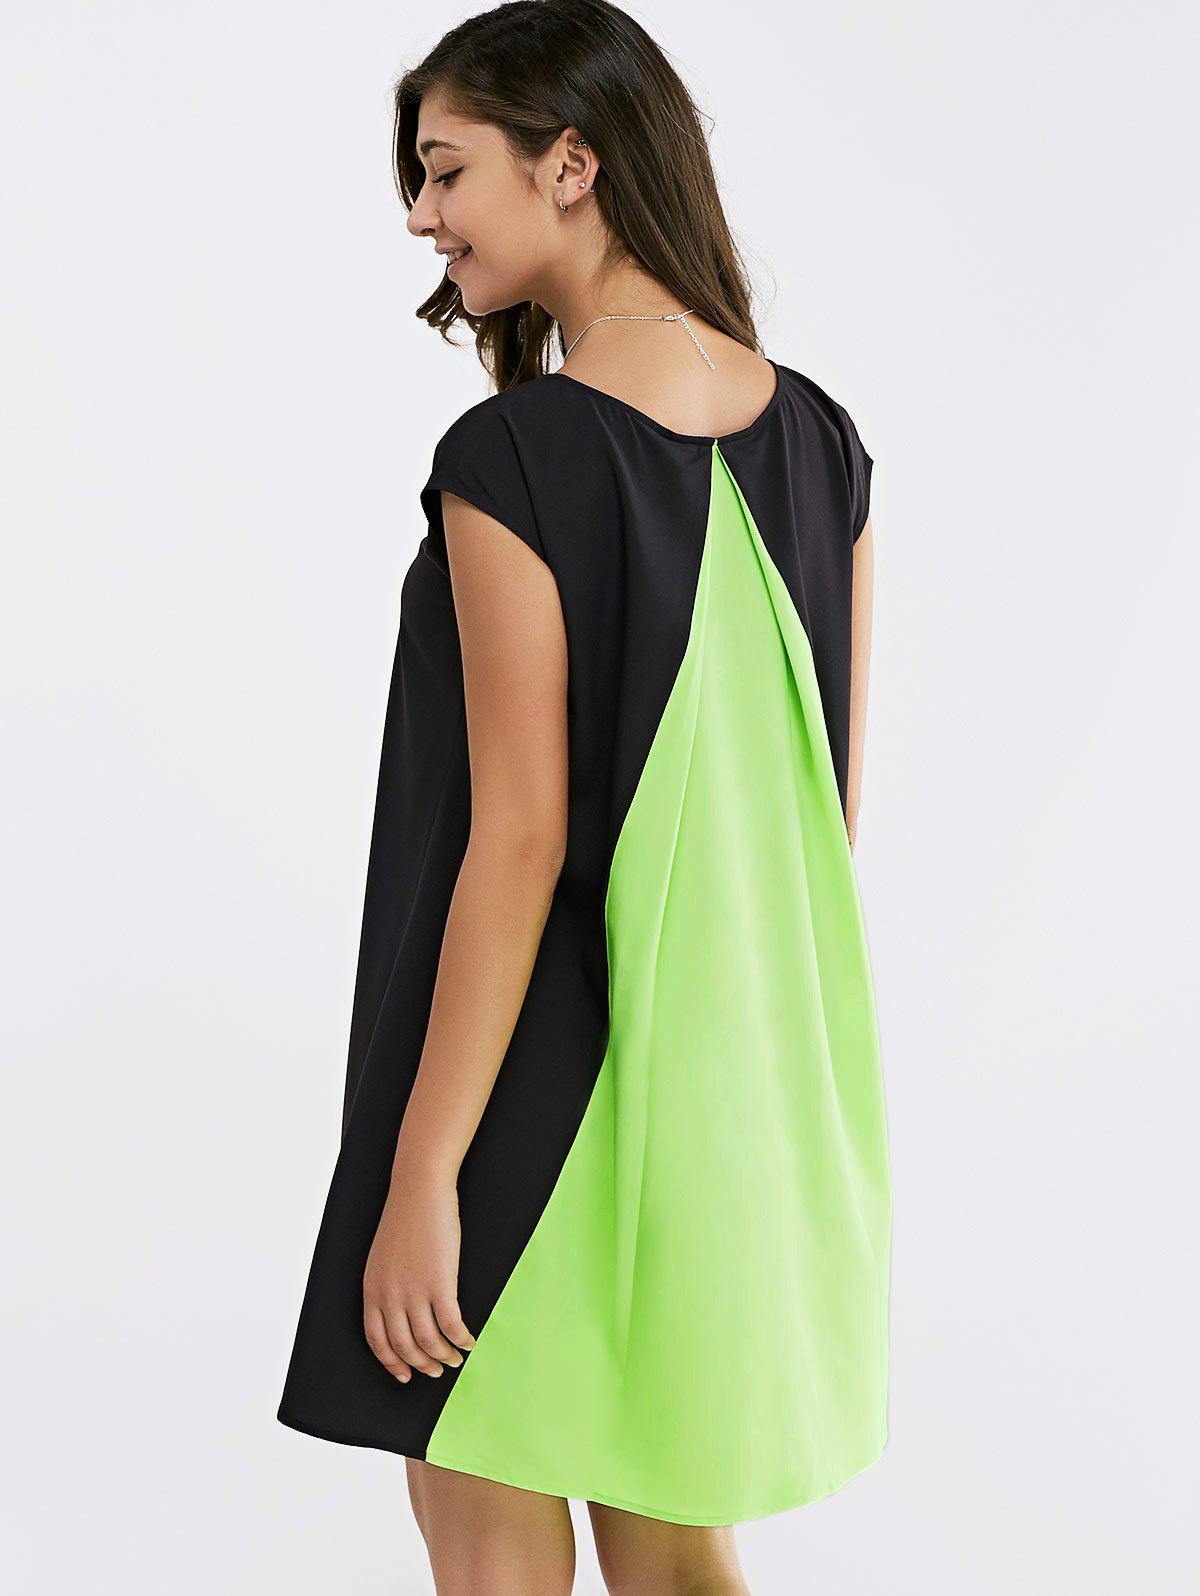 Short Sleeves Round Collar Color Block Splice Dress - BLACK/GREEN XL